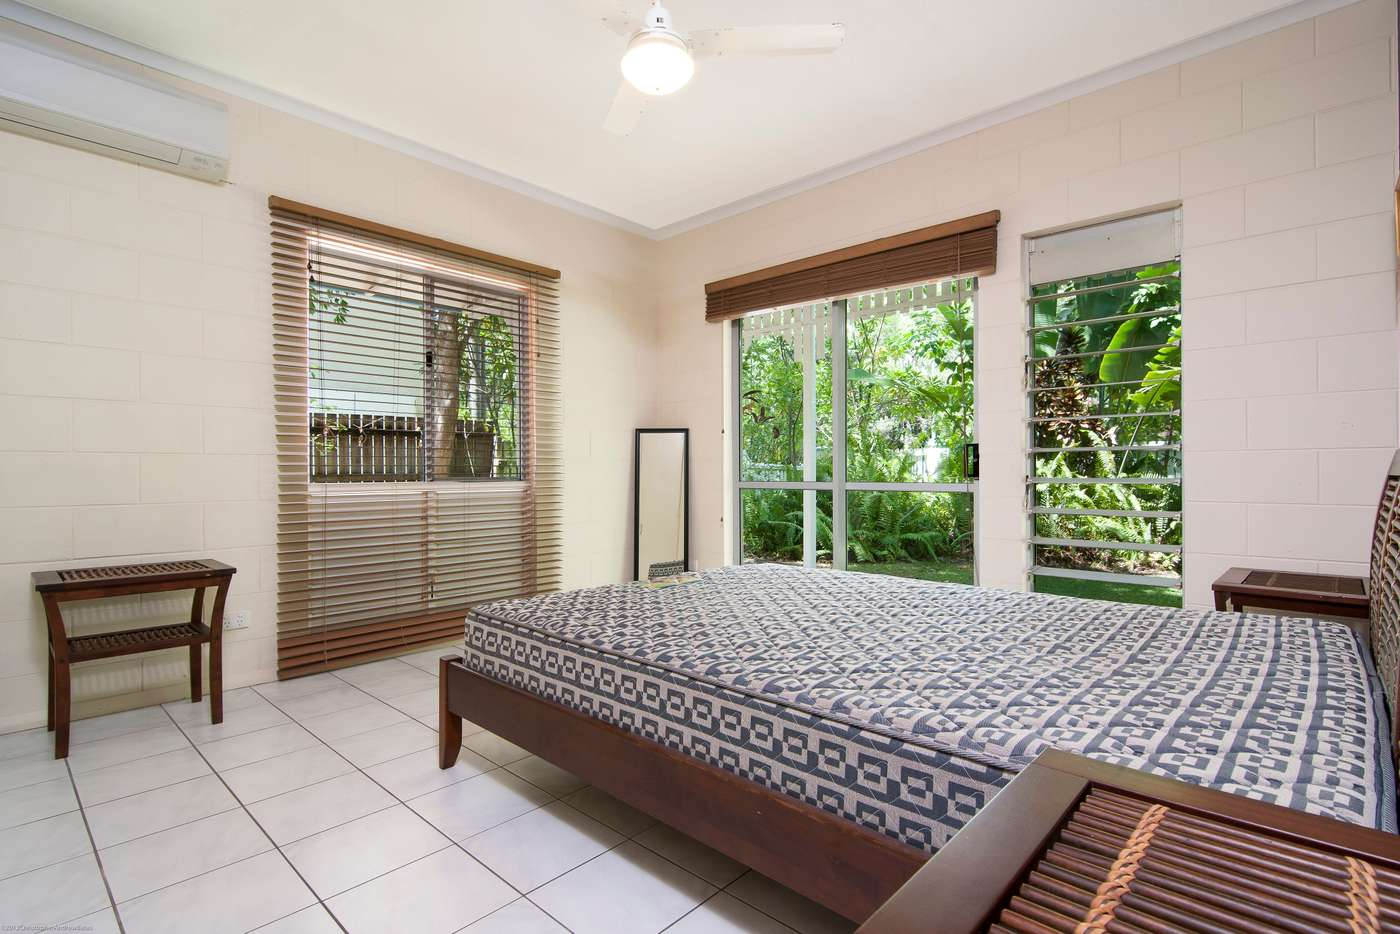 Sixth view of Homely apartment listing, 1/32 Mudlo Street, Port Douglas QLD 4877